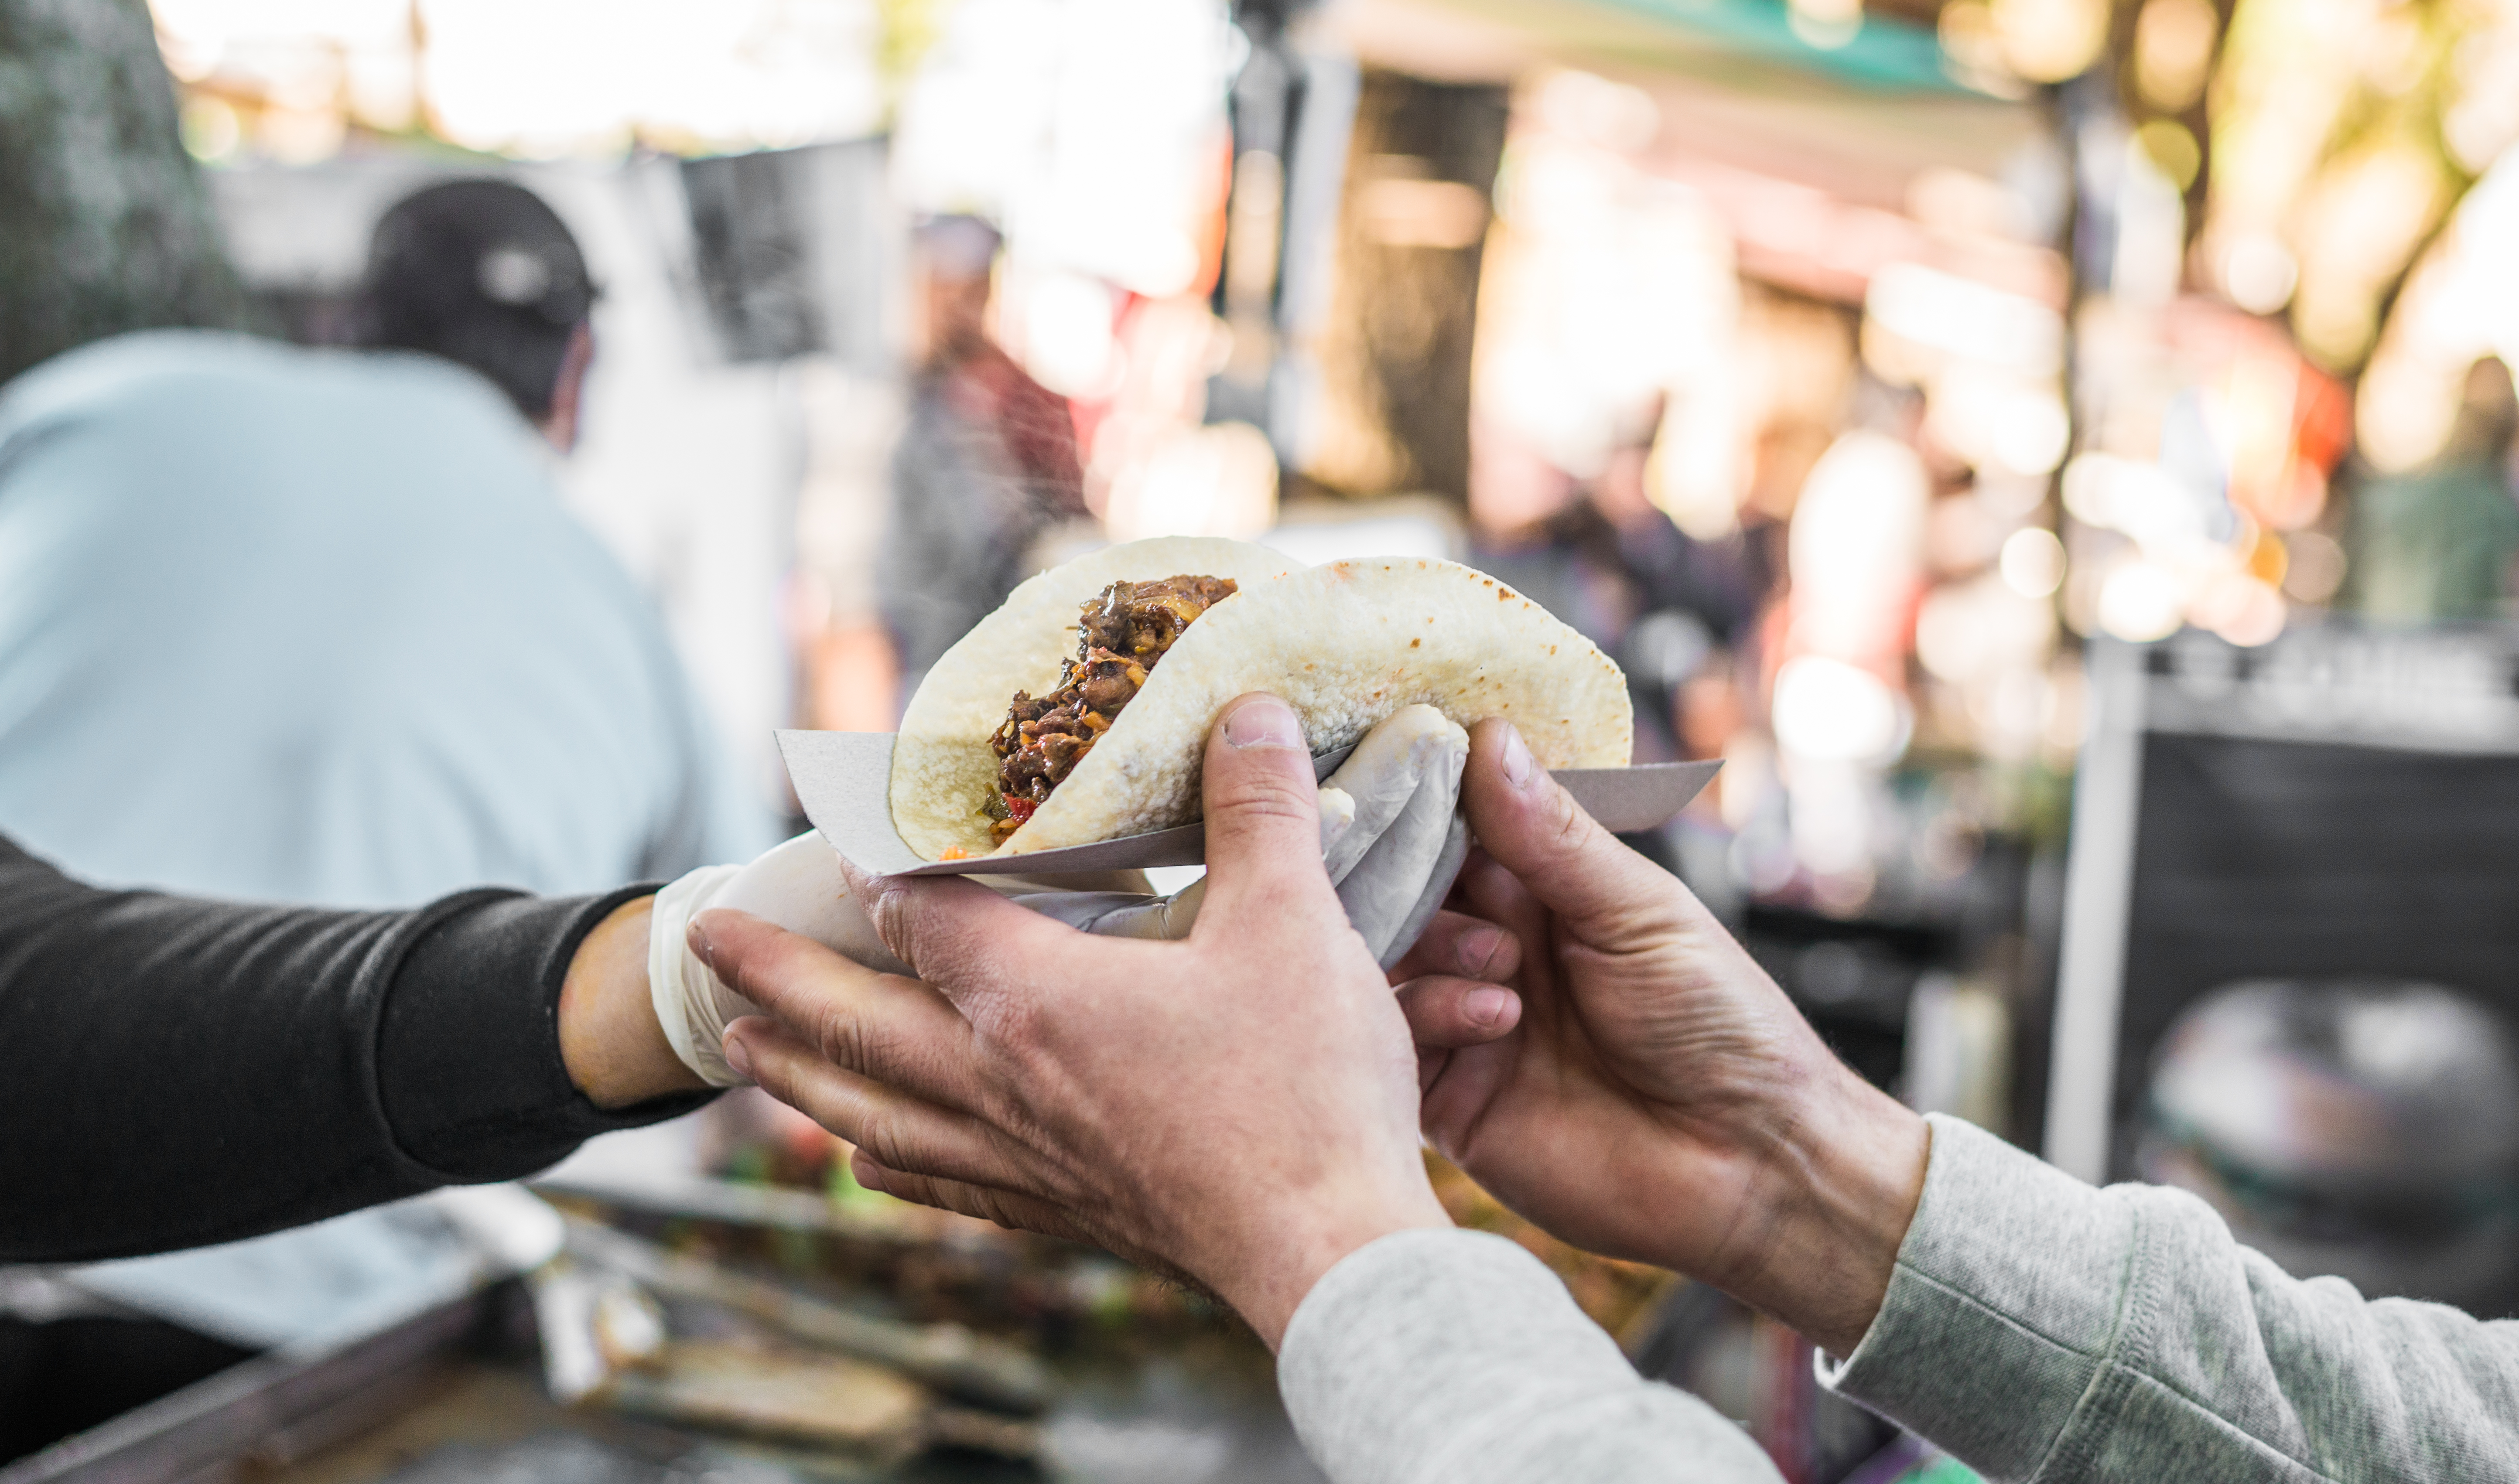 Chef handing a taco to a foodie at a street food market